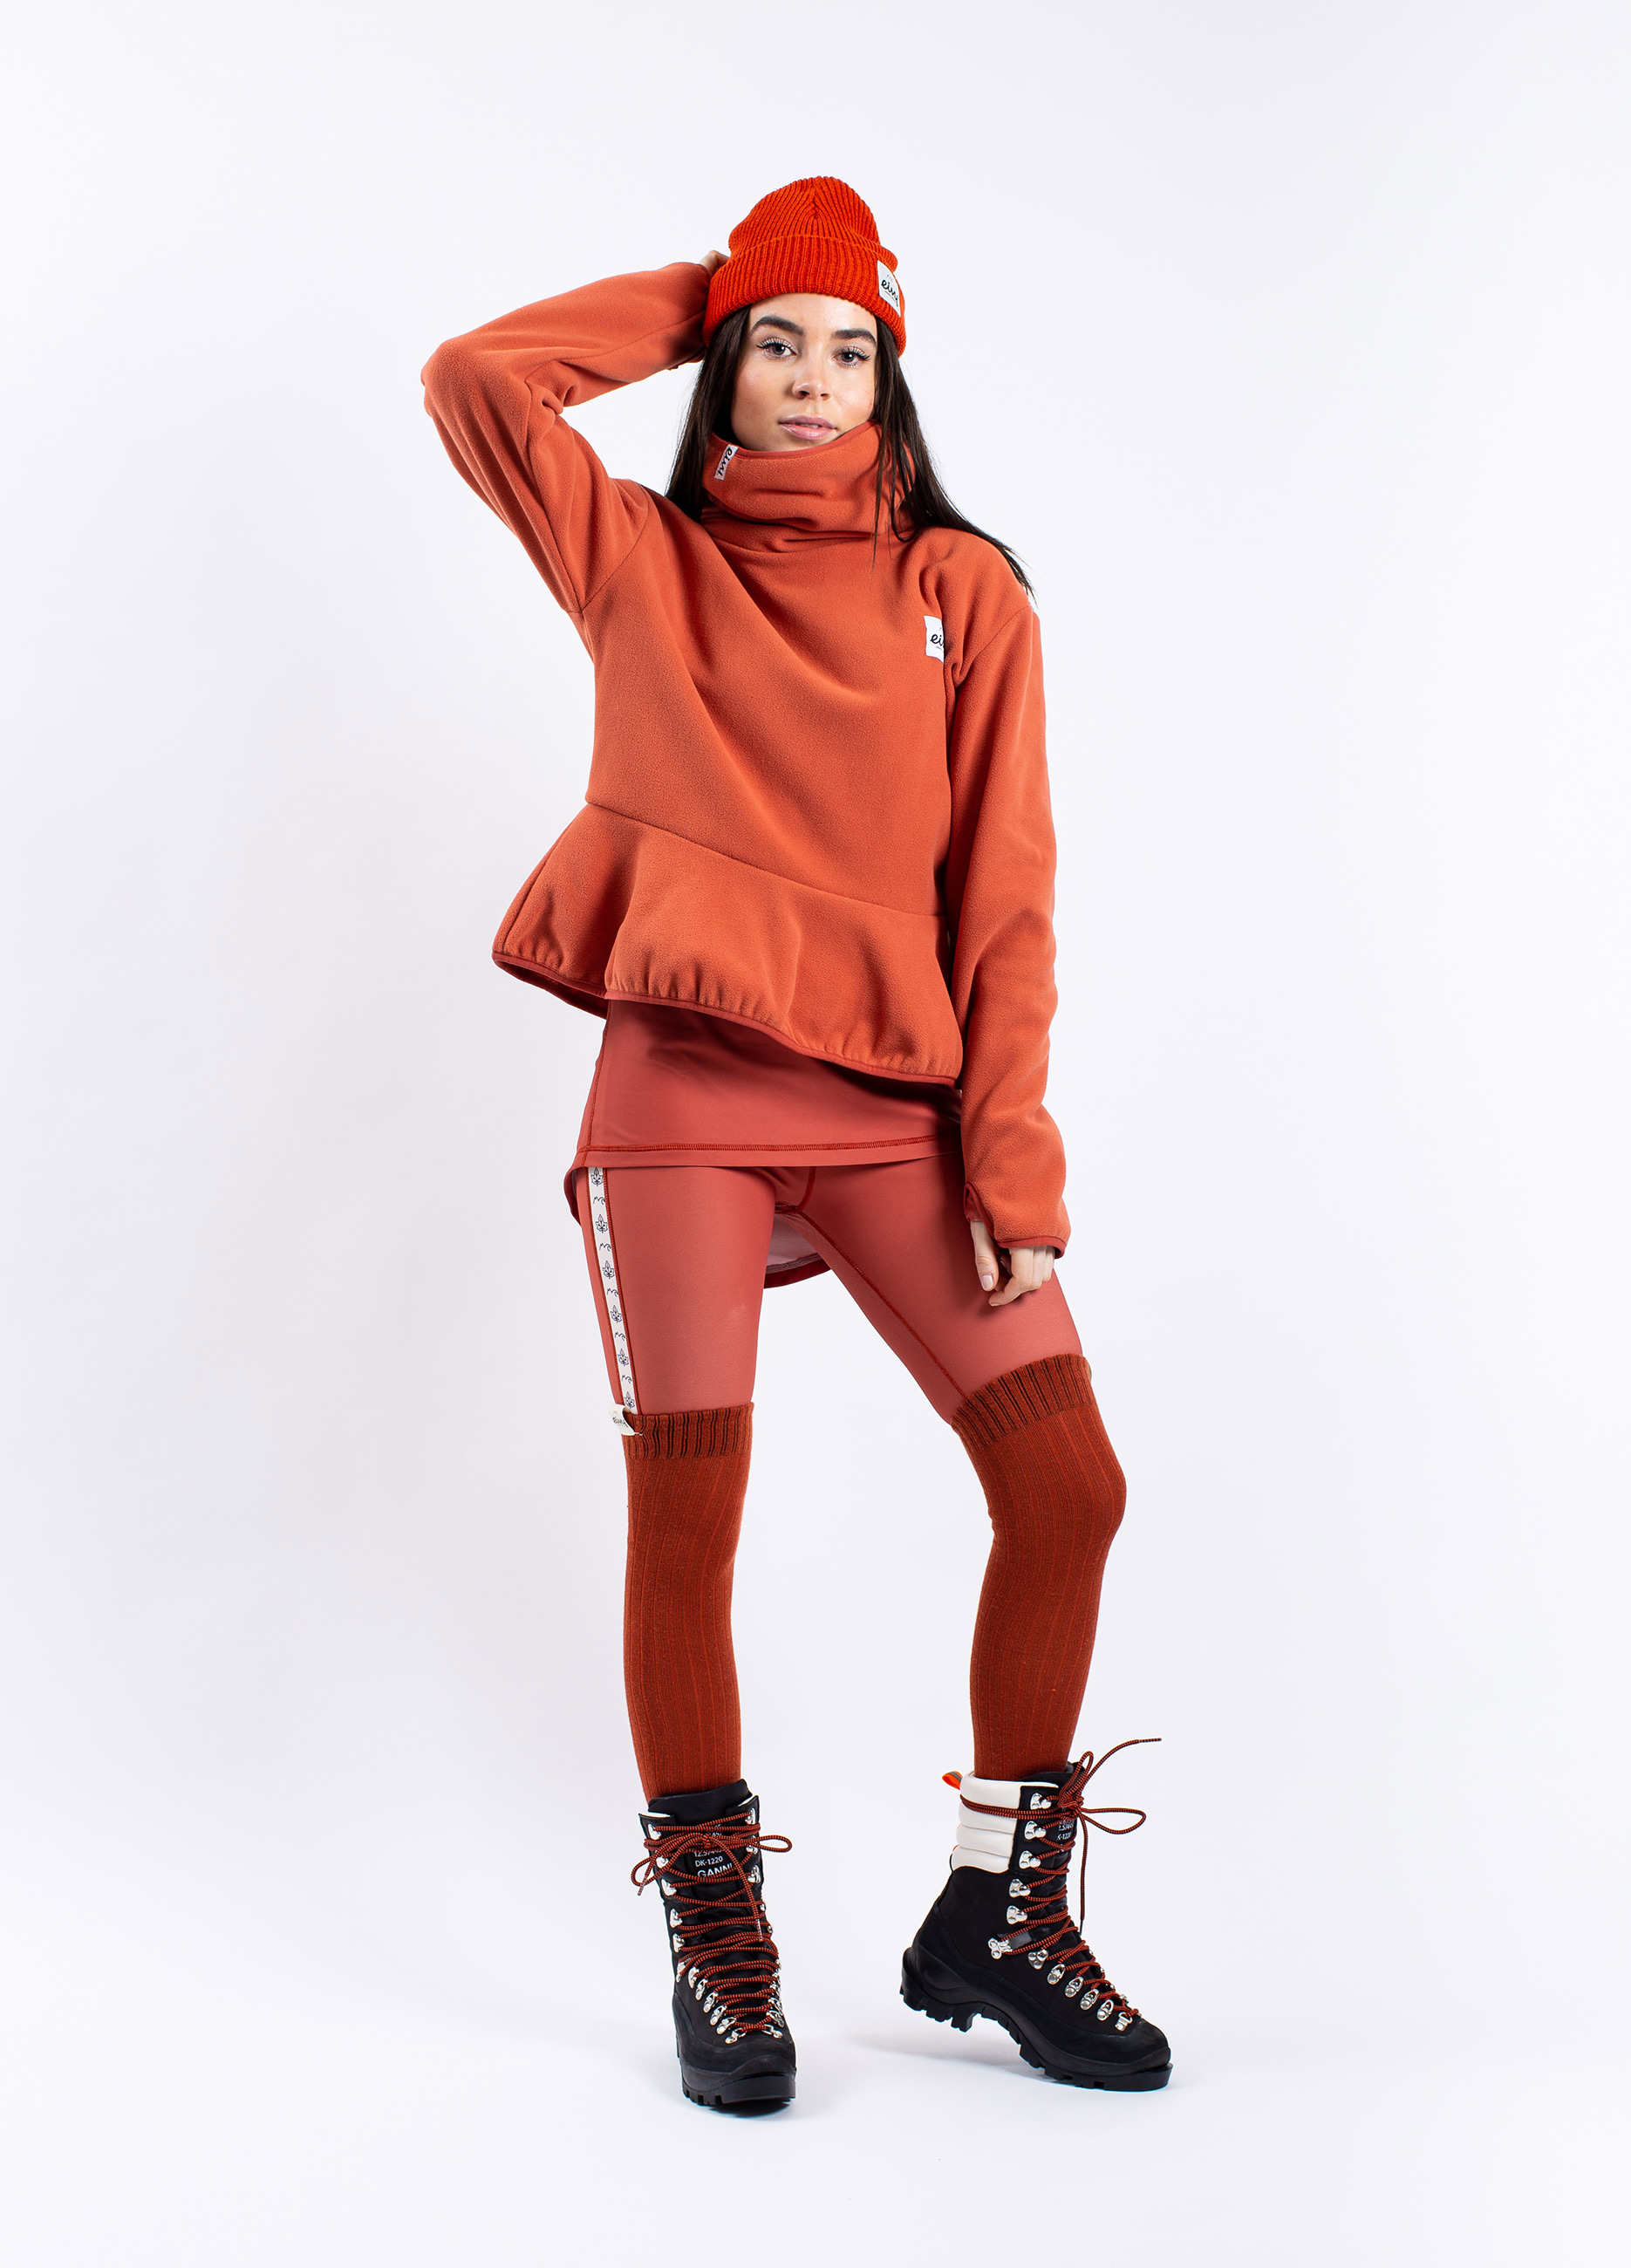 slider-image-https://www.eivyclothing.com/image/3689/Mix_and_match_17.jpg